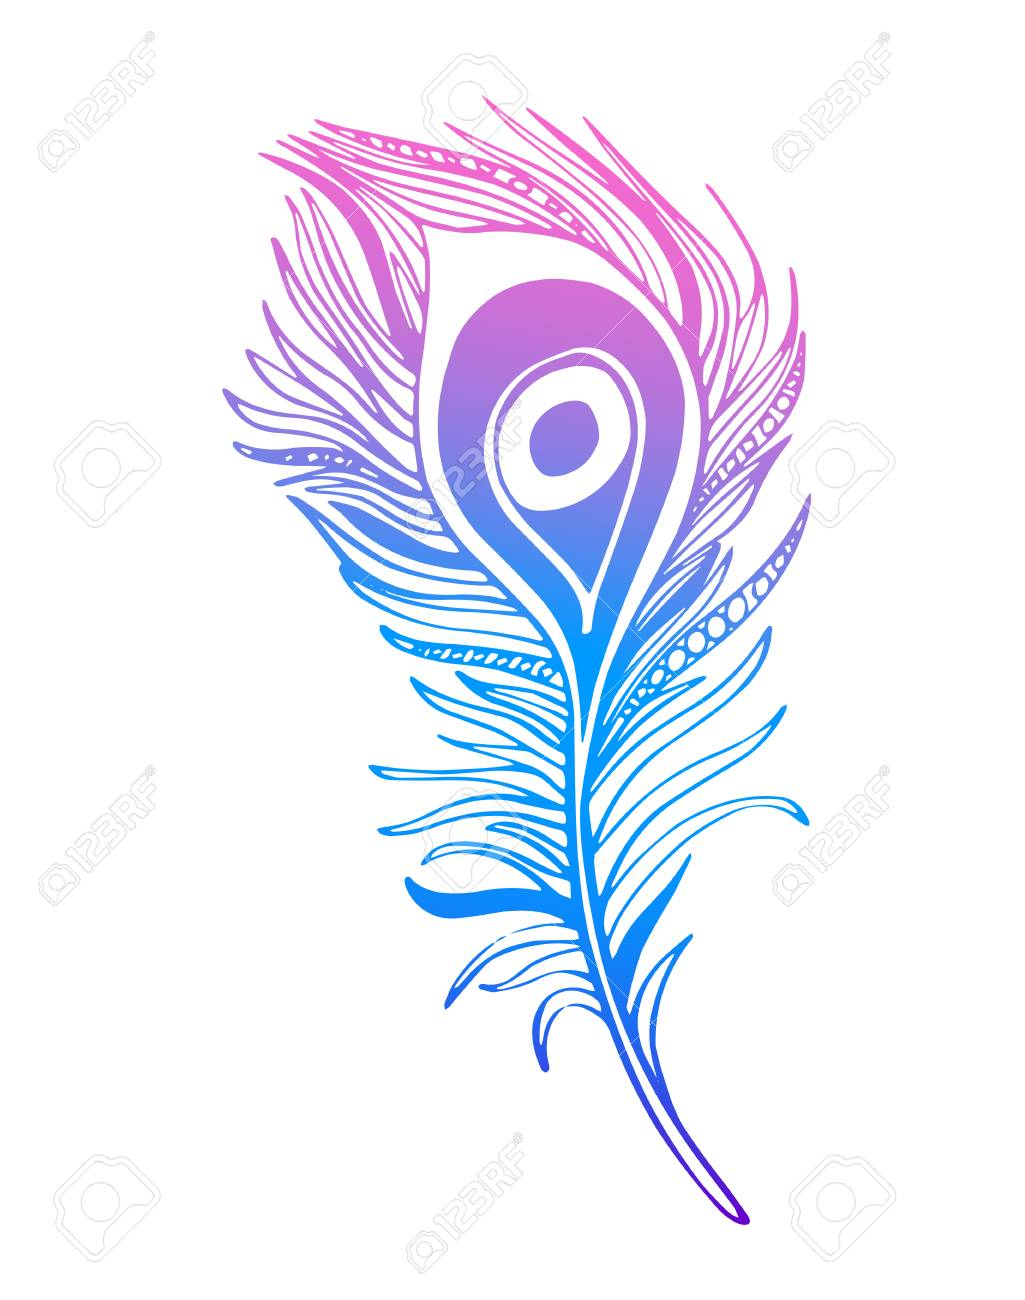 boho hand drawn ornamental feather line art tribalinspired rh 123rf com peacock feather clip art free download peacock feather border clipart